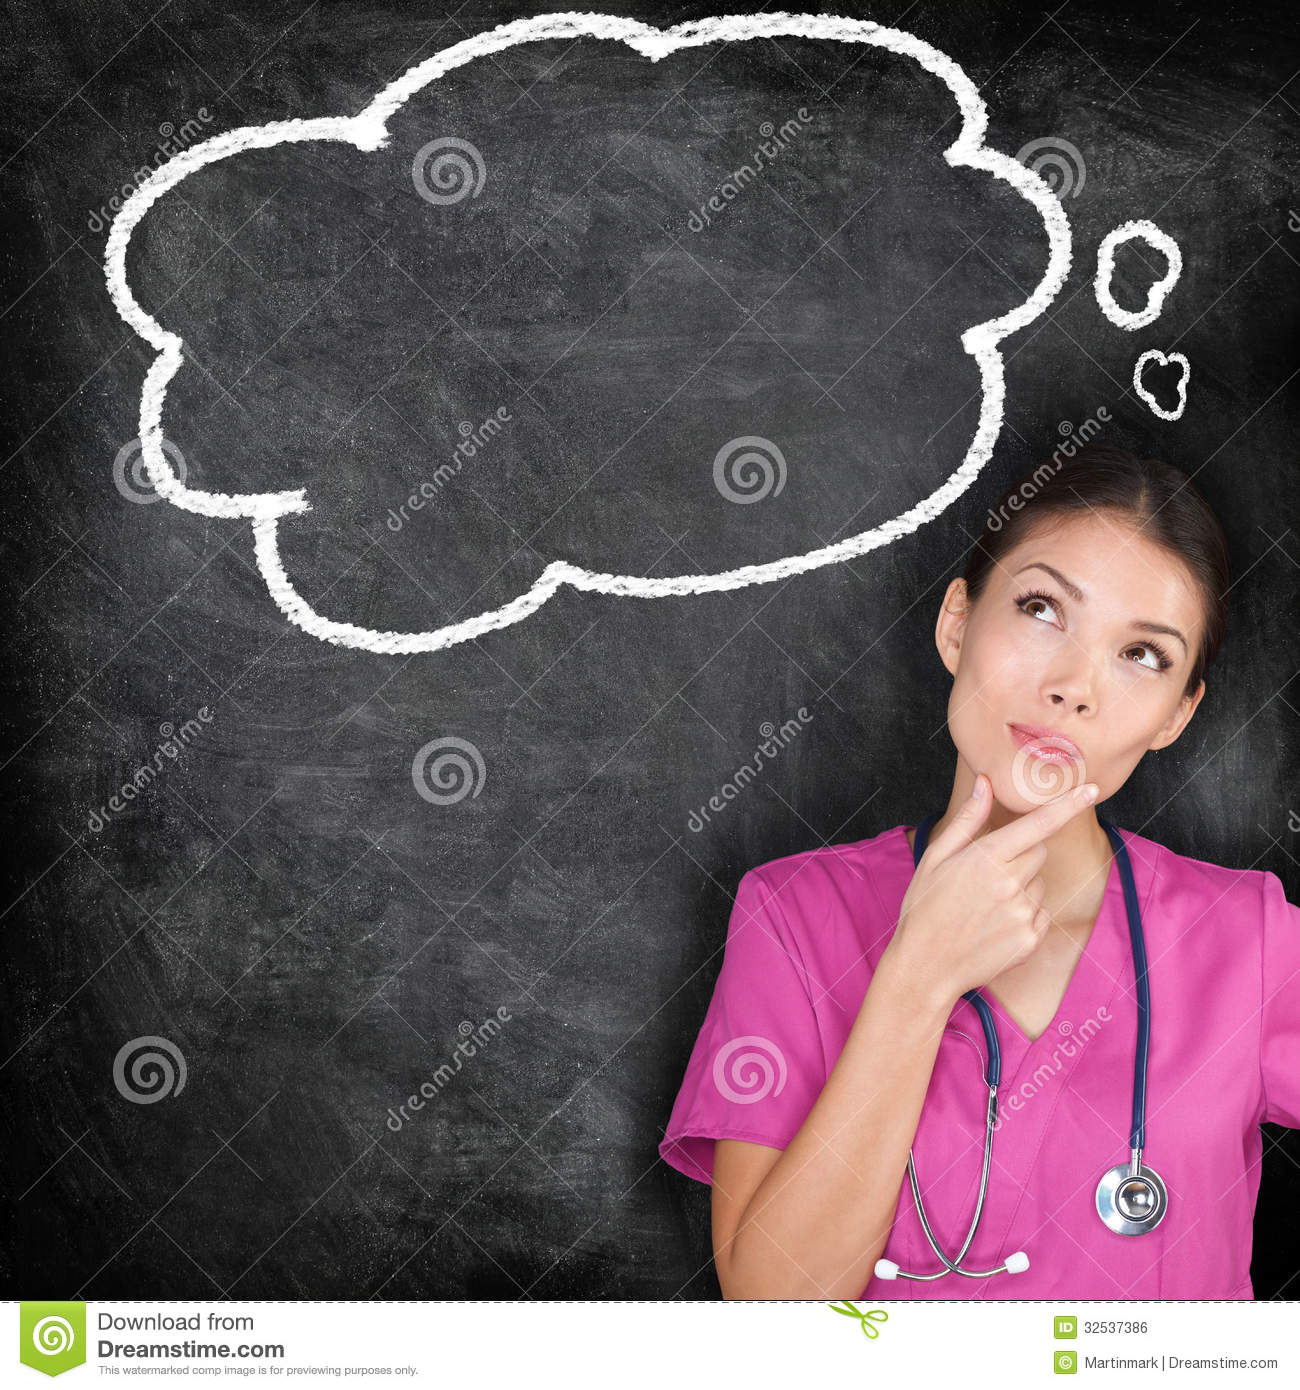 ... Nurse Doctor Blackboard Royalty Free Stock Image - Image: 32537386